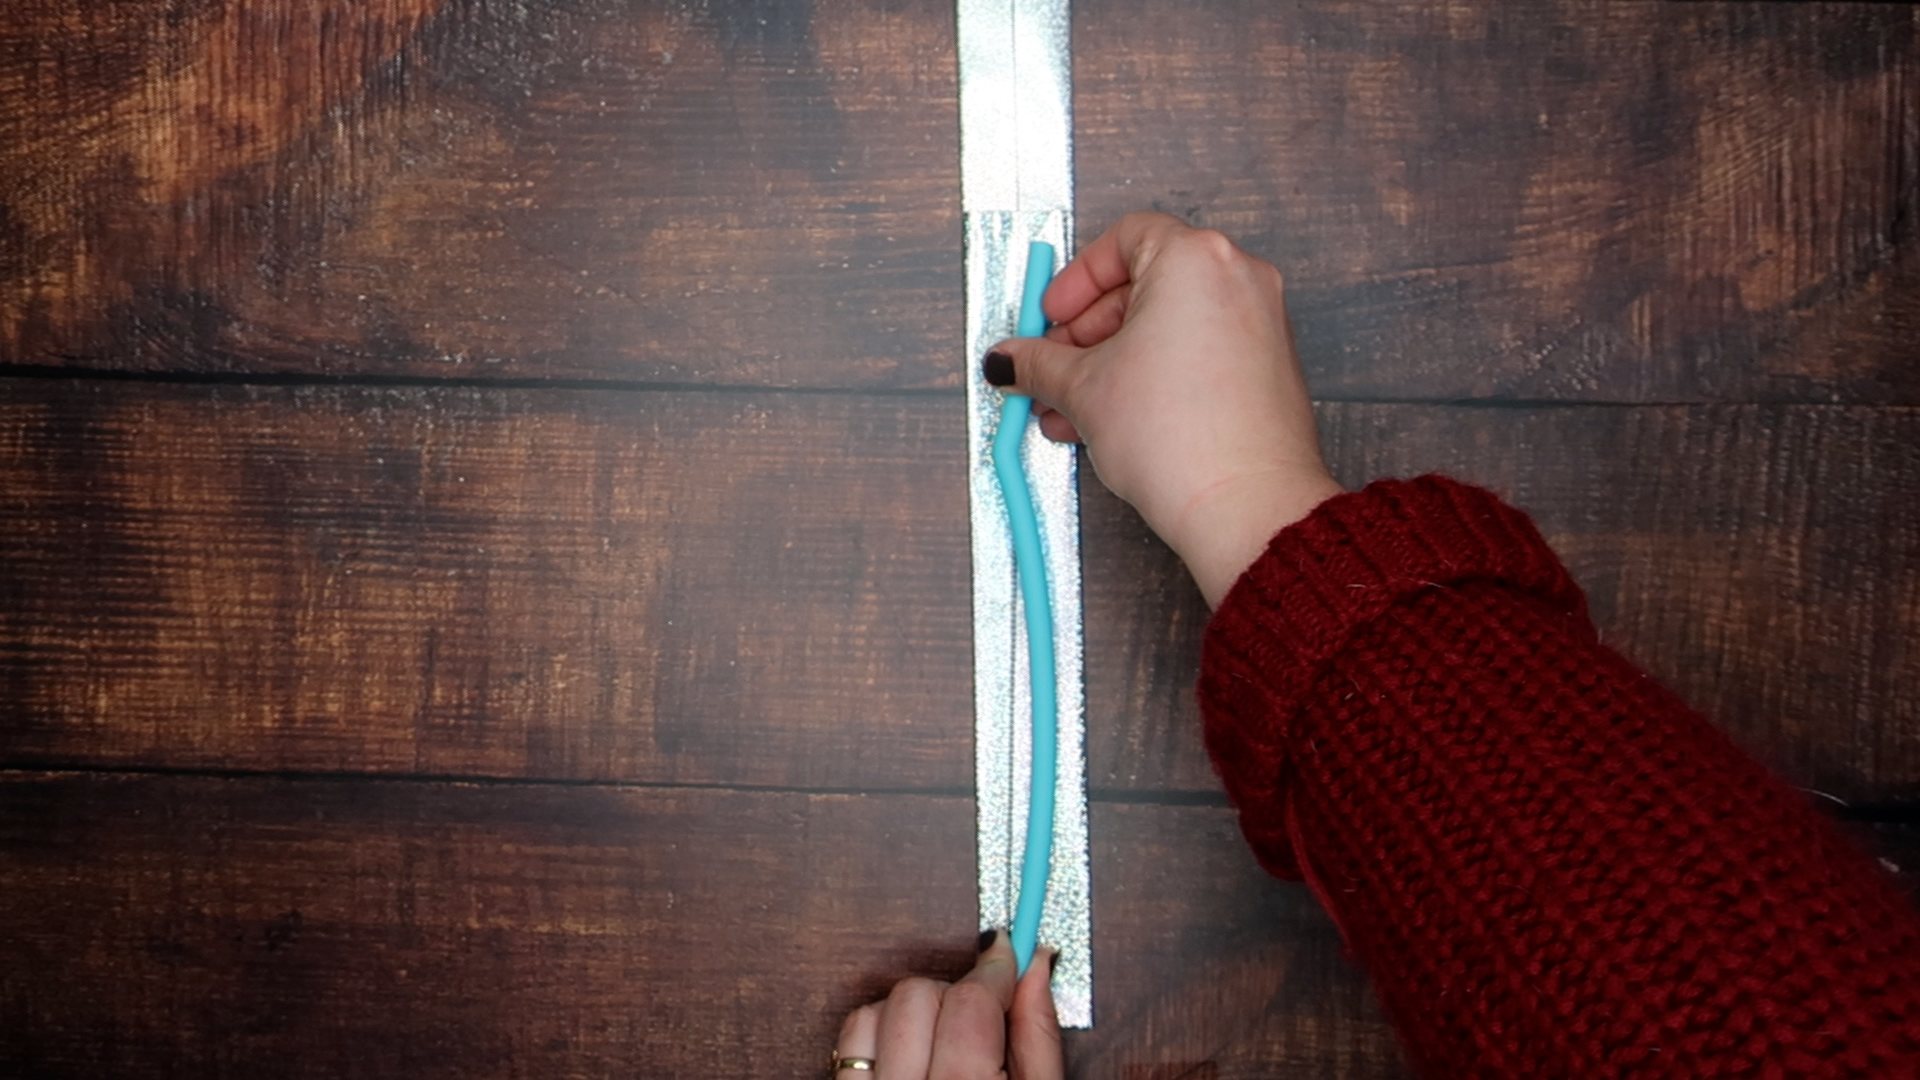 Step 5a: Measure your reusable straw